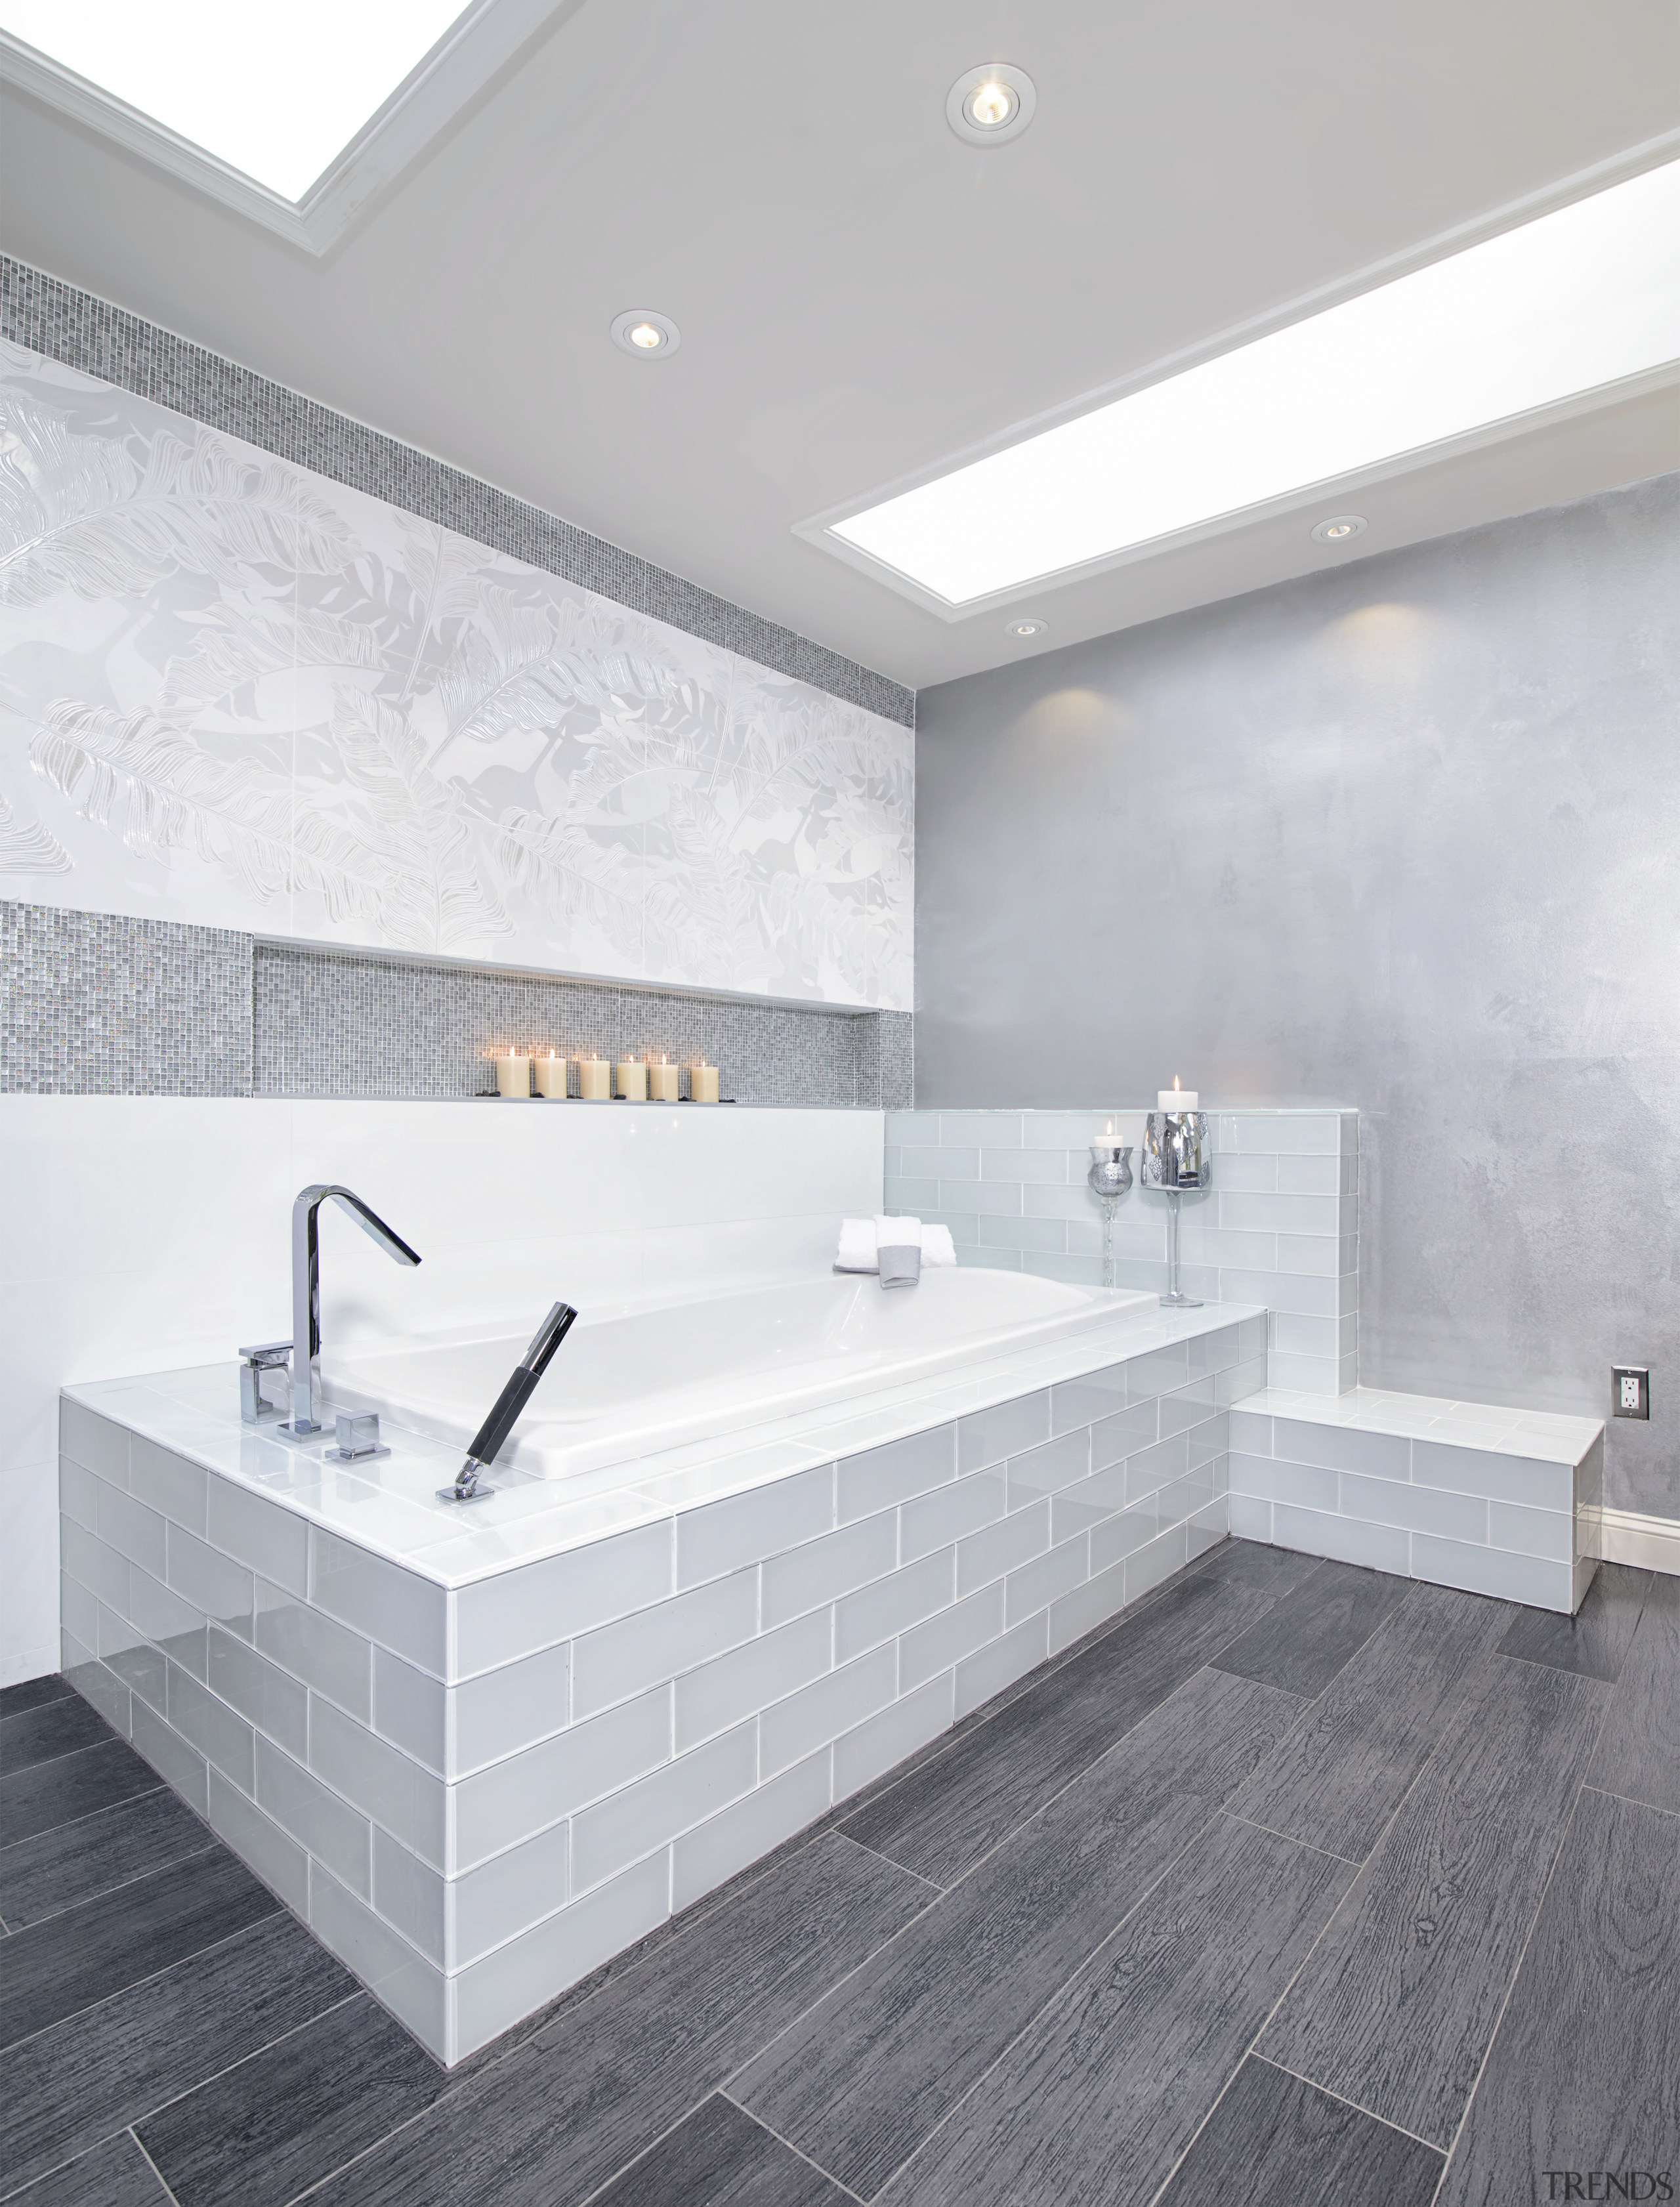 Spa style bathroom with large format subway tile angle, architecture, bathroom, bathroom sink, daylighting, floor, flooring, interior design, product design, sink, tap, tile, wall, white